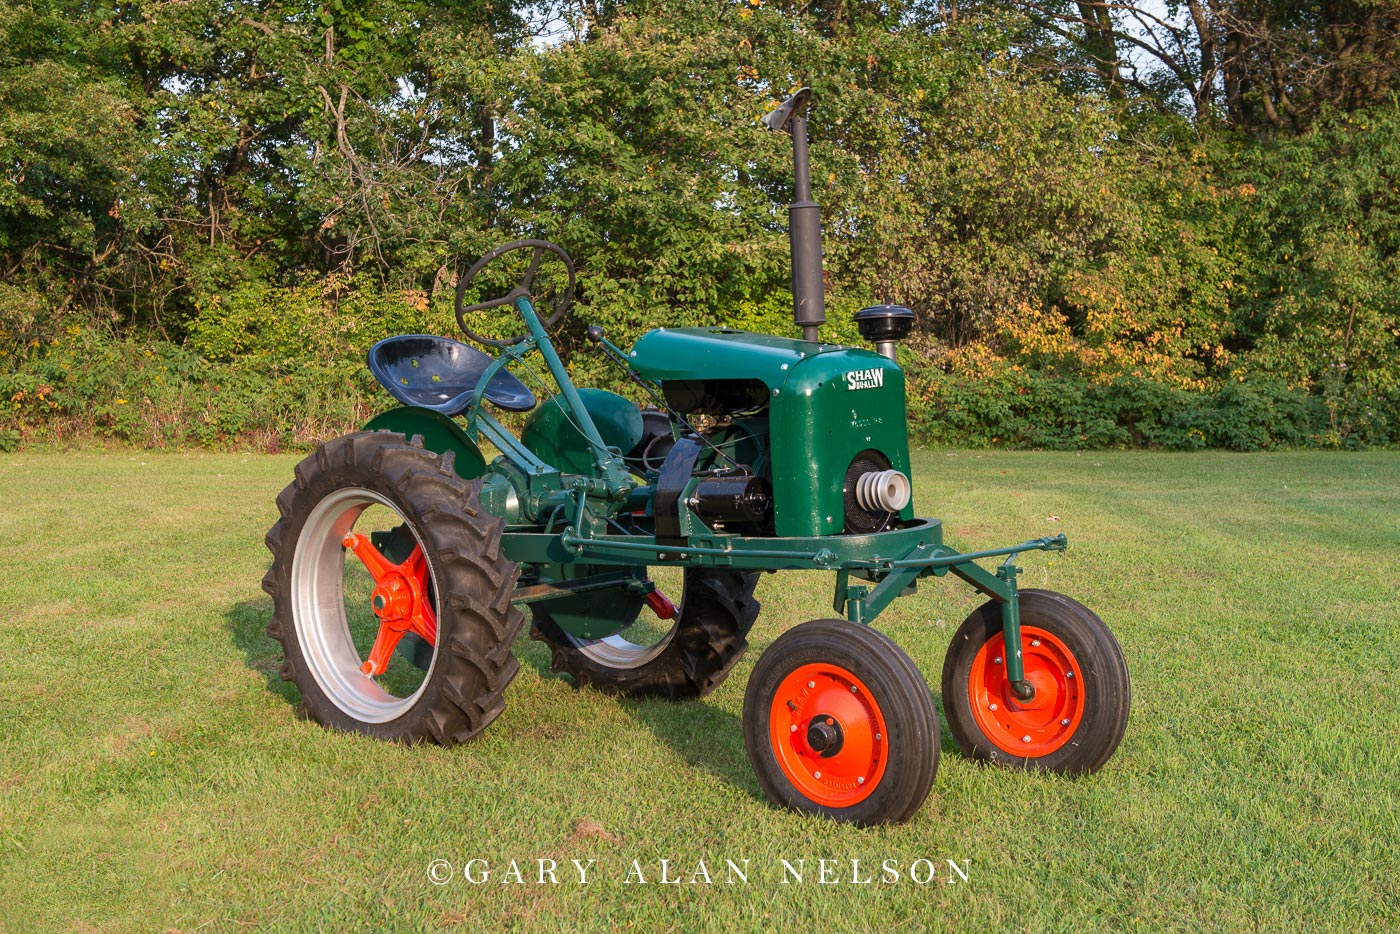 antique tractor, shaw, photo